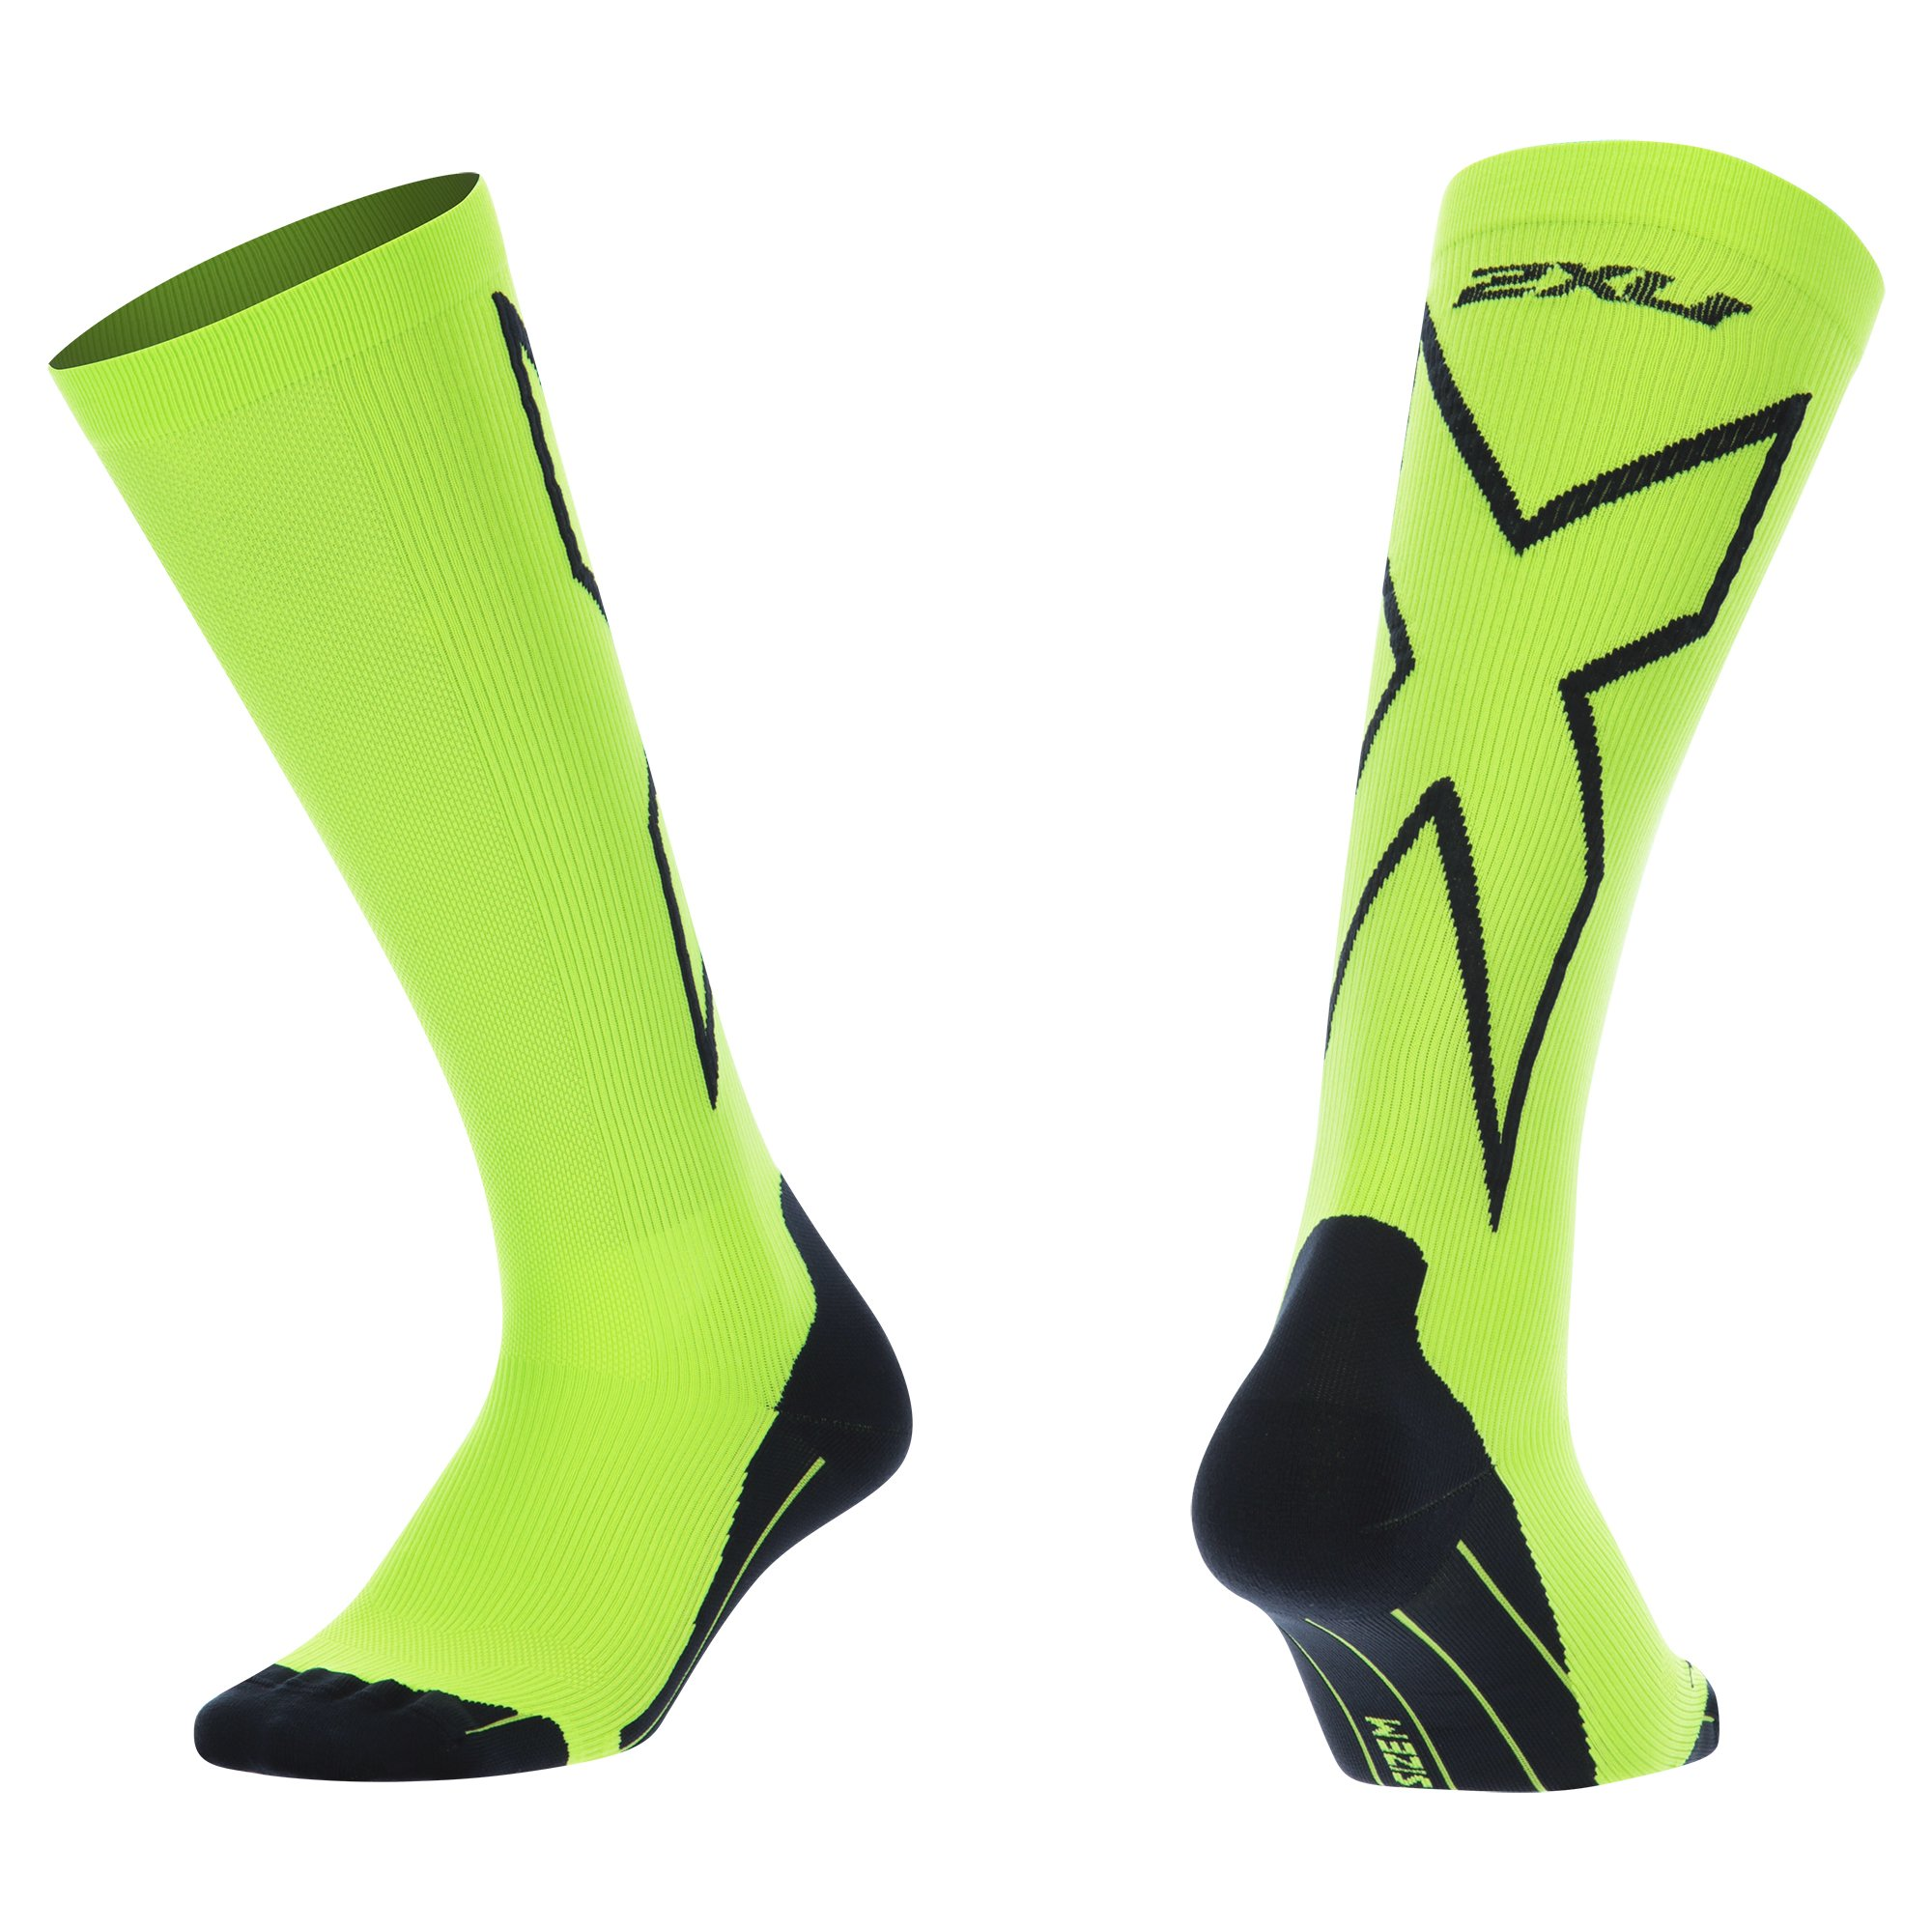 2XU Men's Compression performance X Socks, Fluoro Green/Black, X-Large